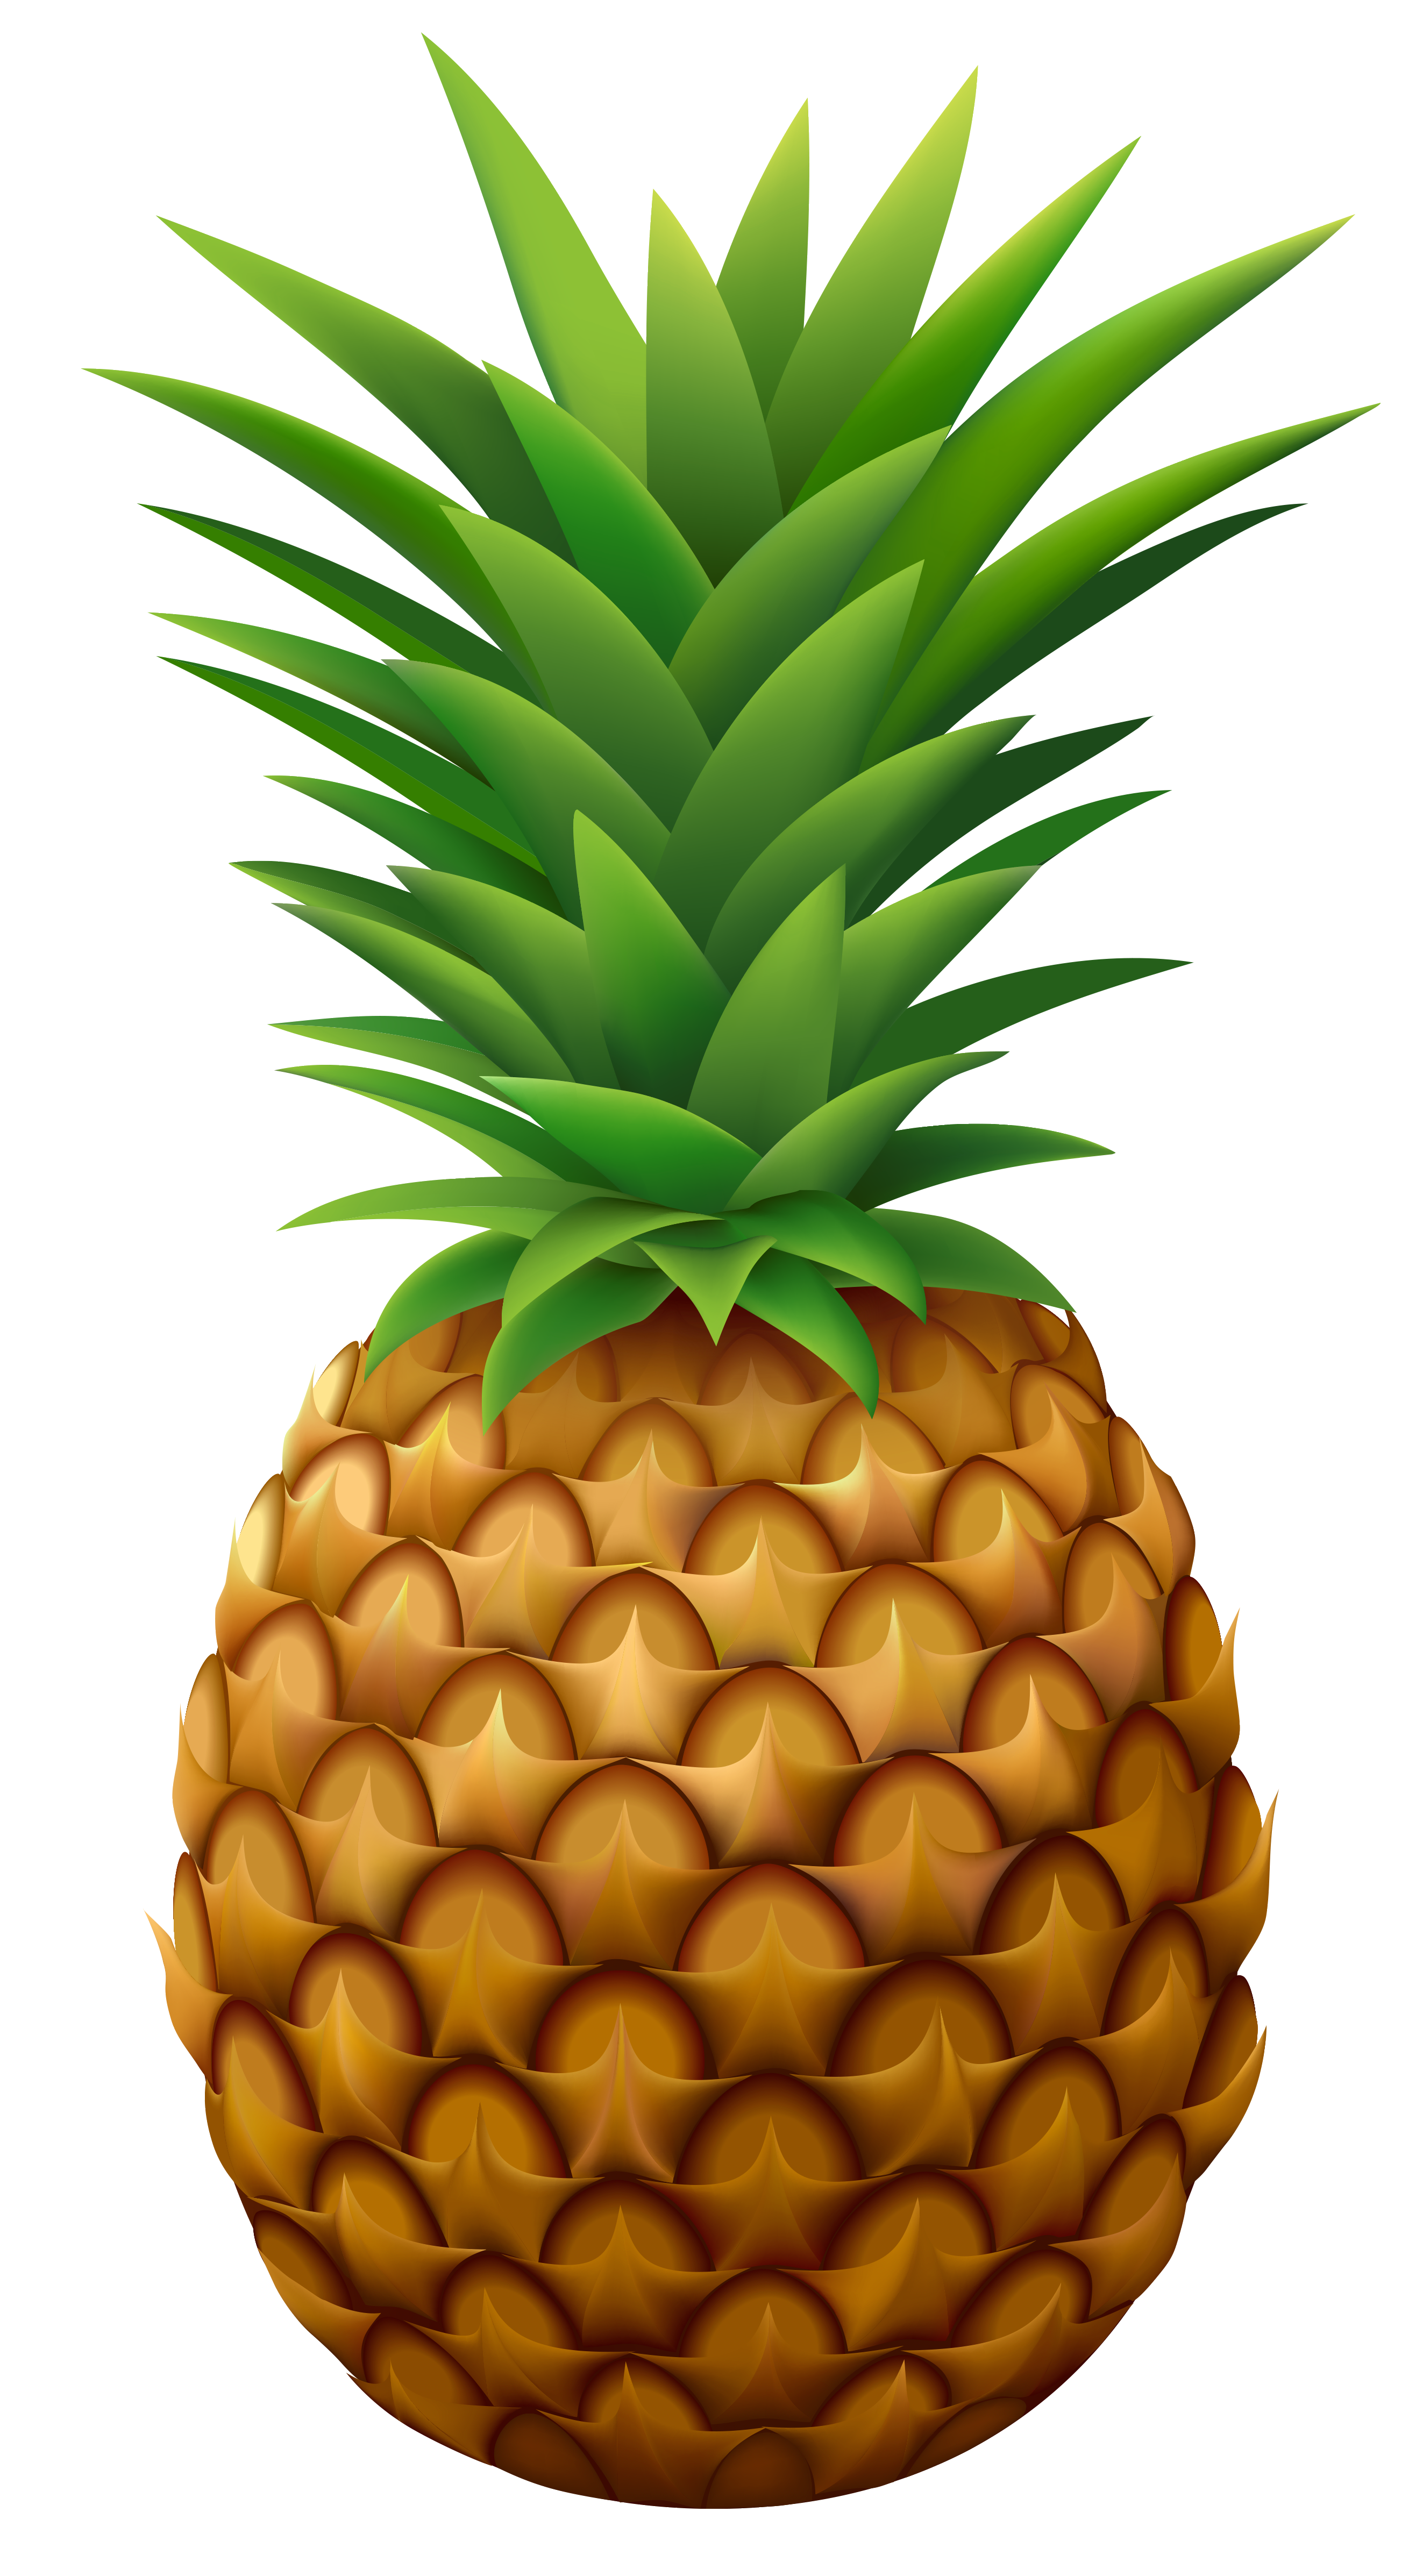 Clipart person pineapple. Beach graphics illustrations free